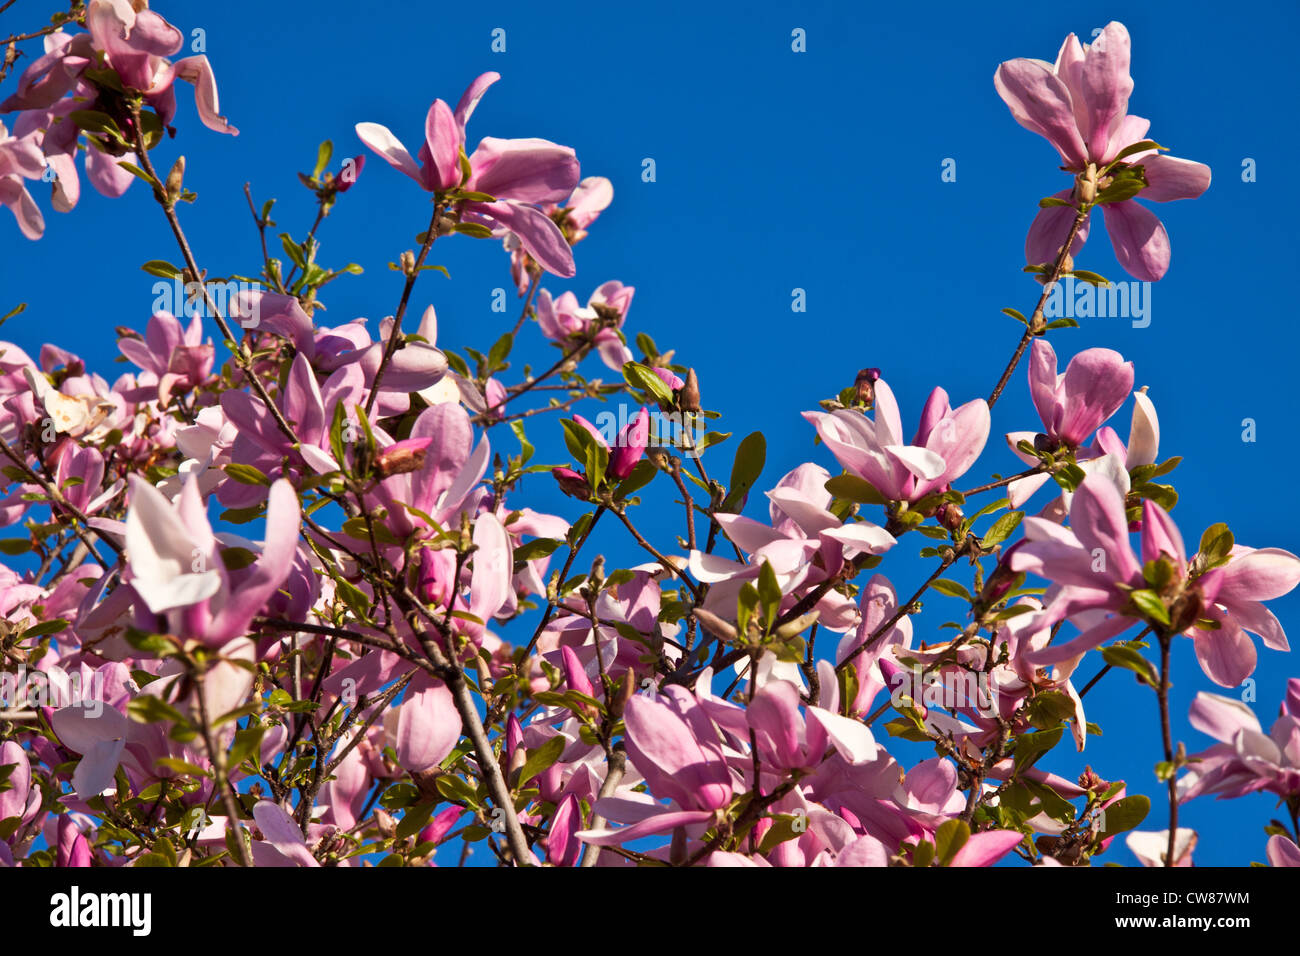 Magnolia purple flowers in a summer sunny day against a clear blue sky Stock Photo